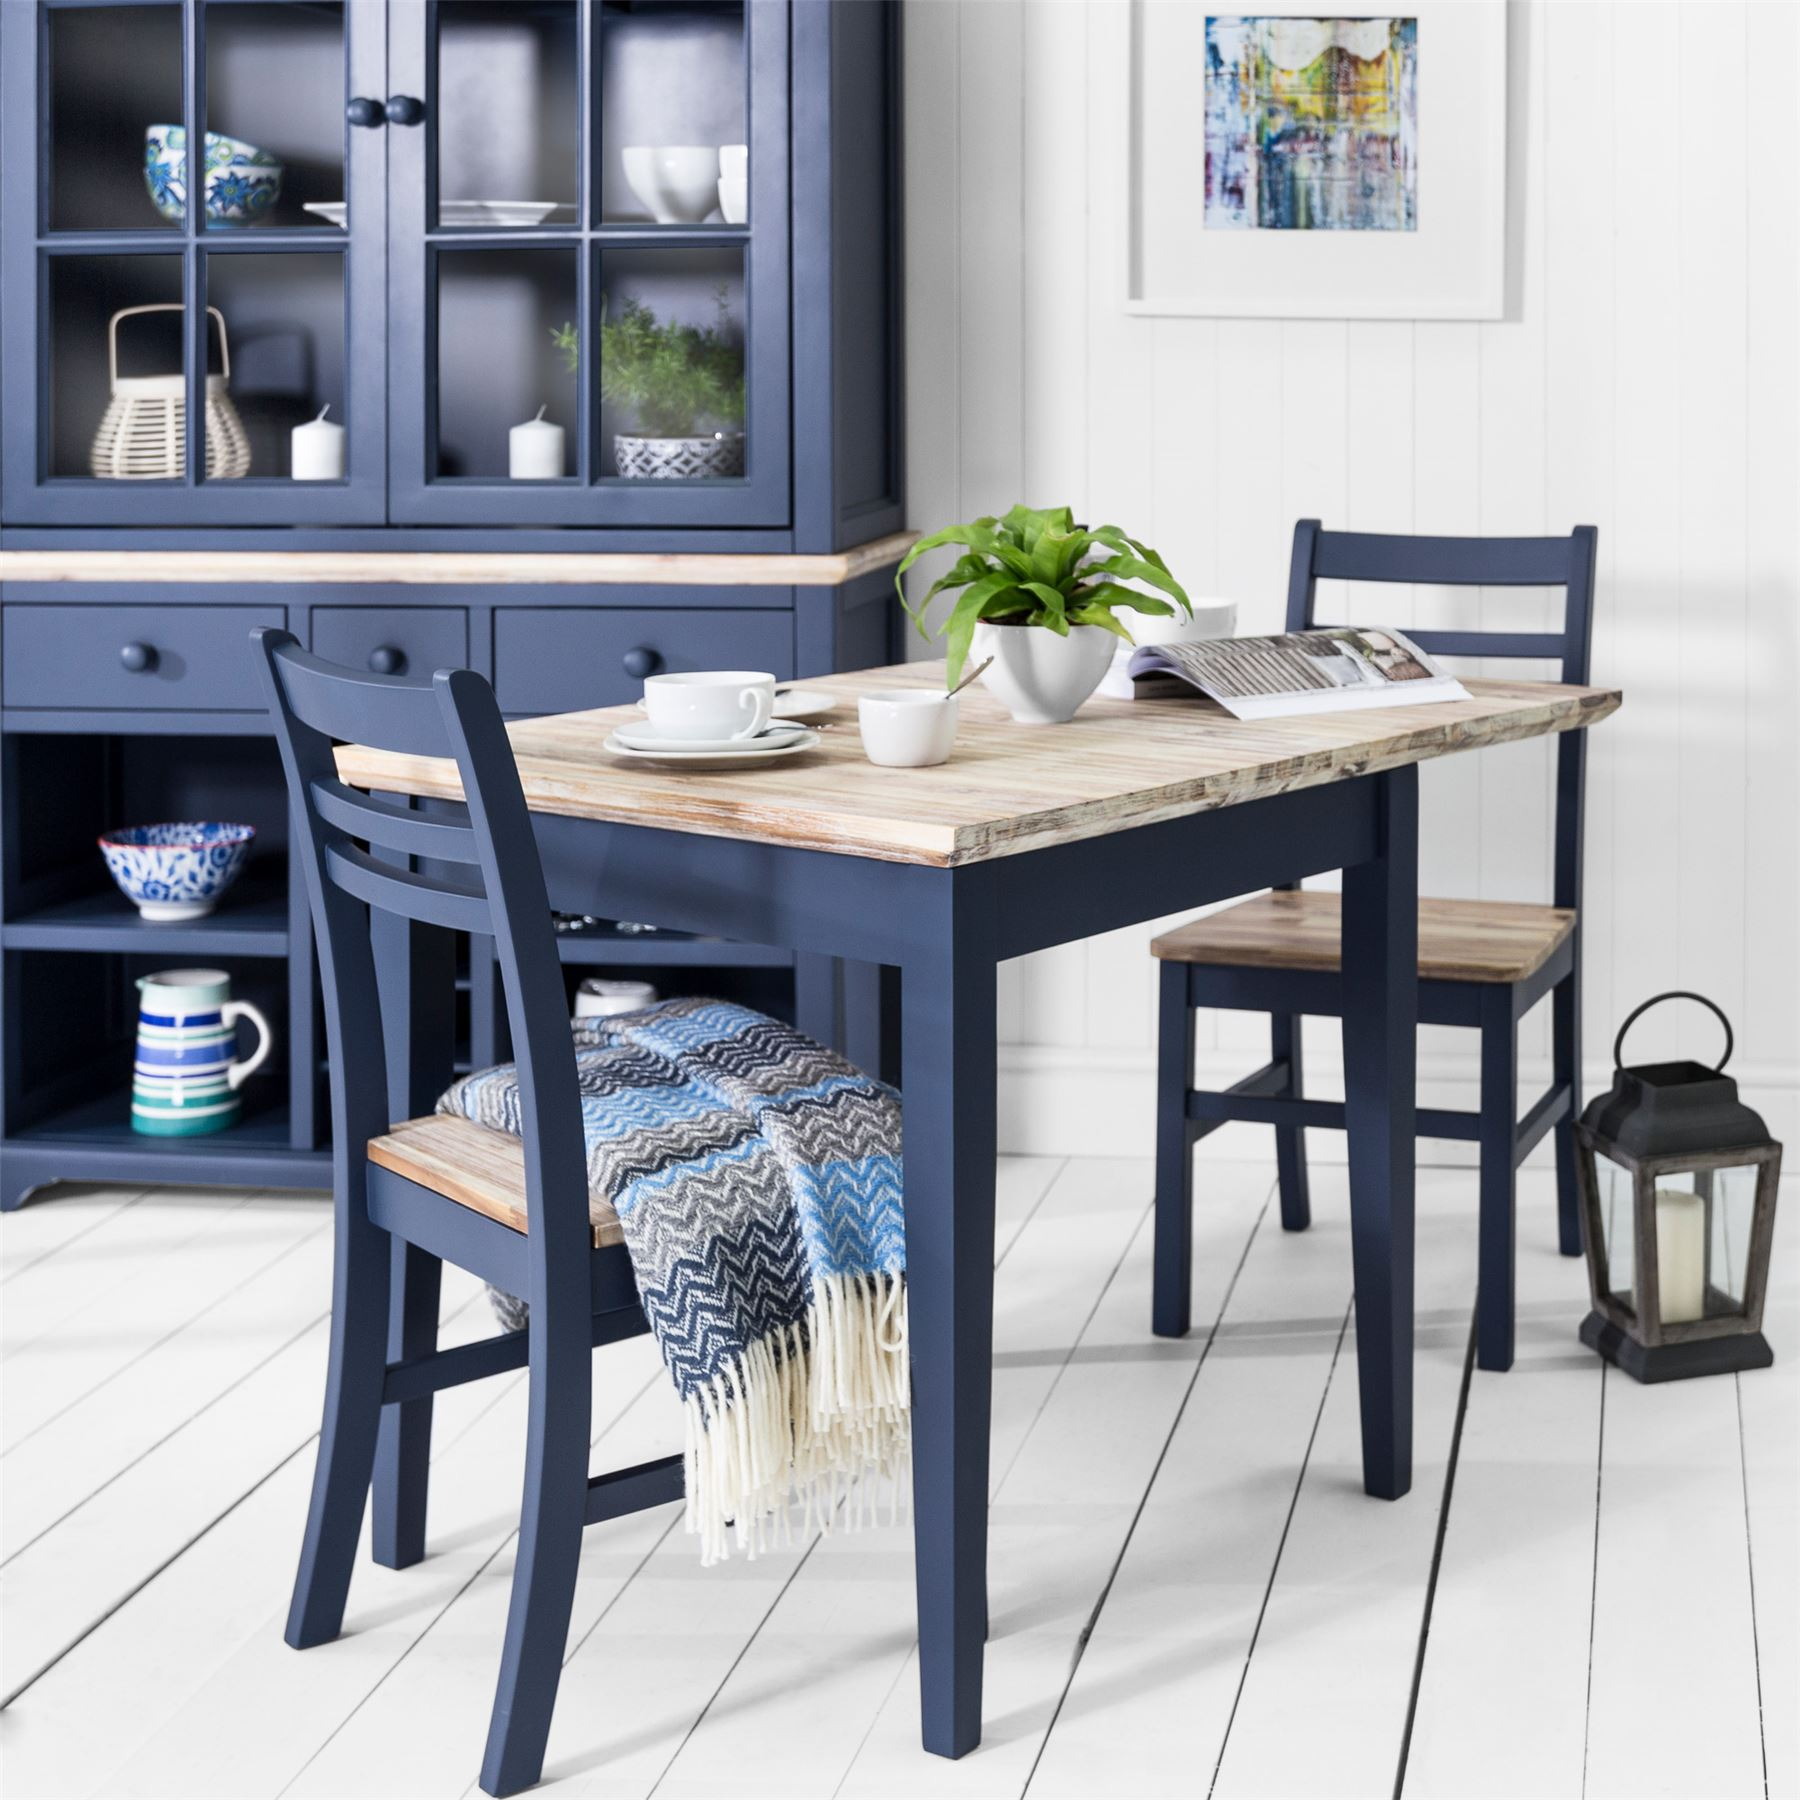 Details About Florence Square Extended Table Navy Blue Kitchen Table With Drop Down Leaf